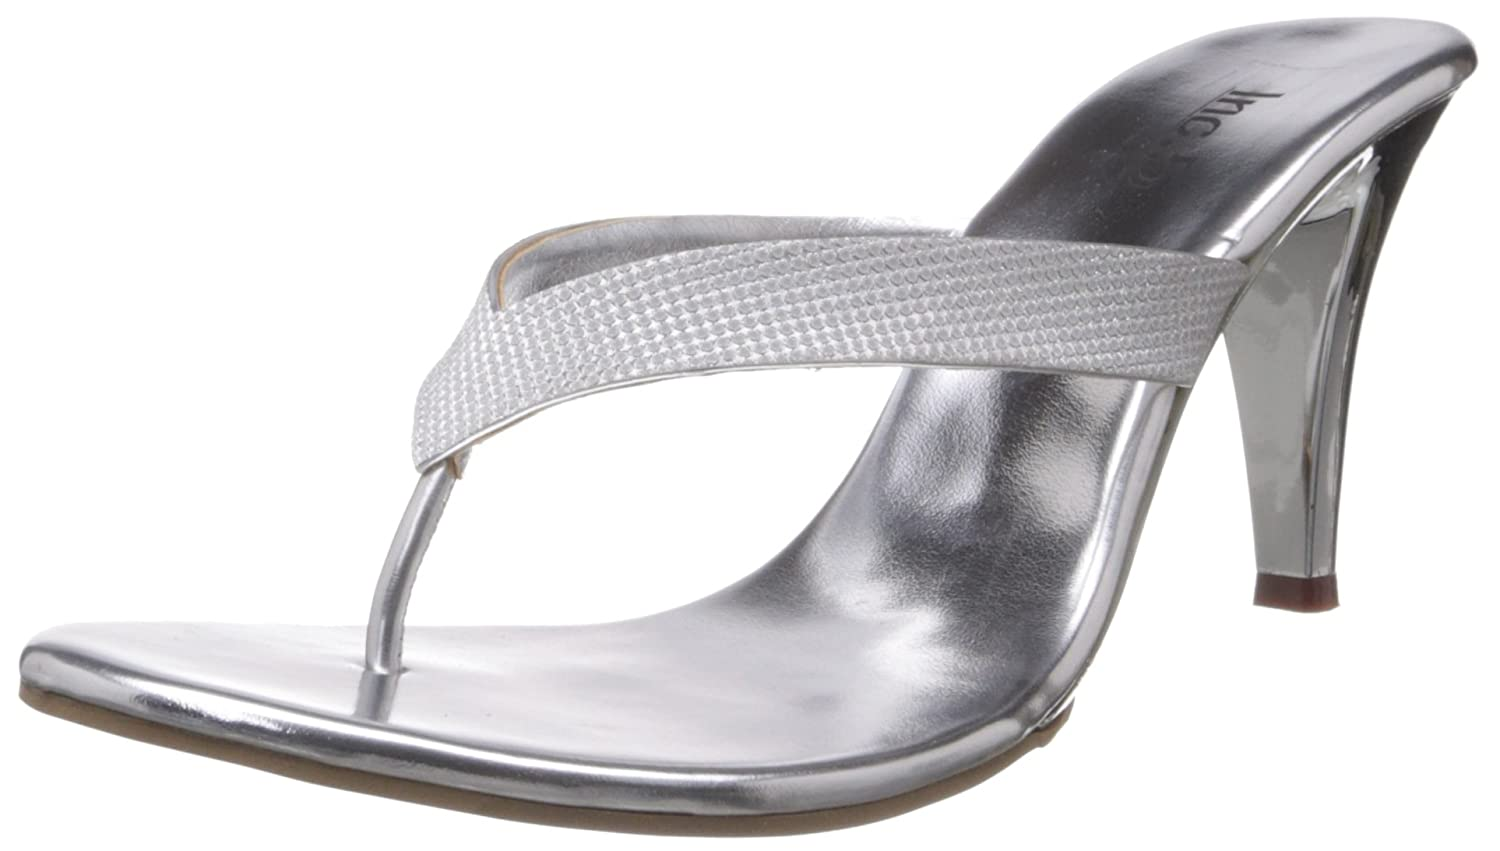 Buy Inc.5 Women's Slippers For Rs 895 - Flat 50% Off At Amazon